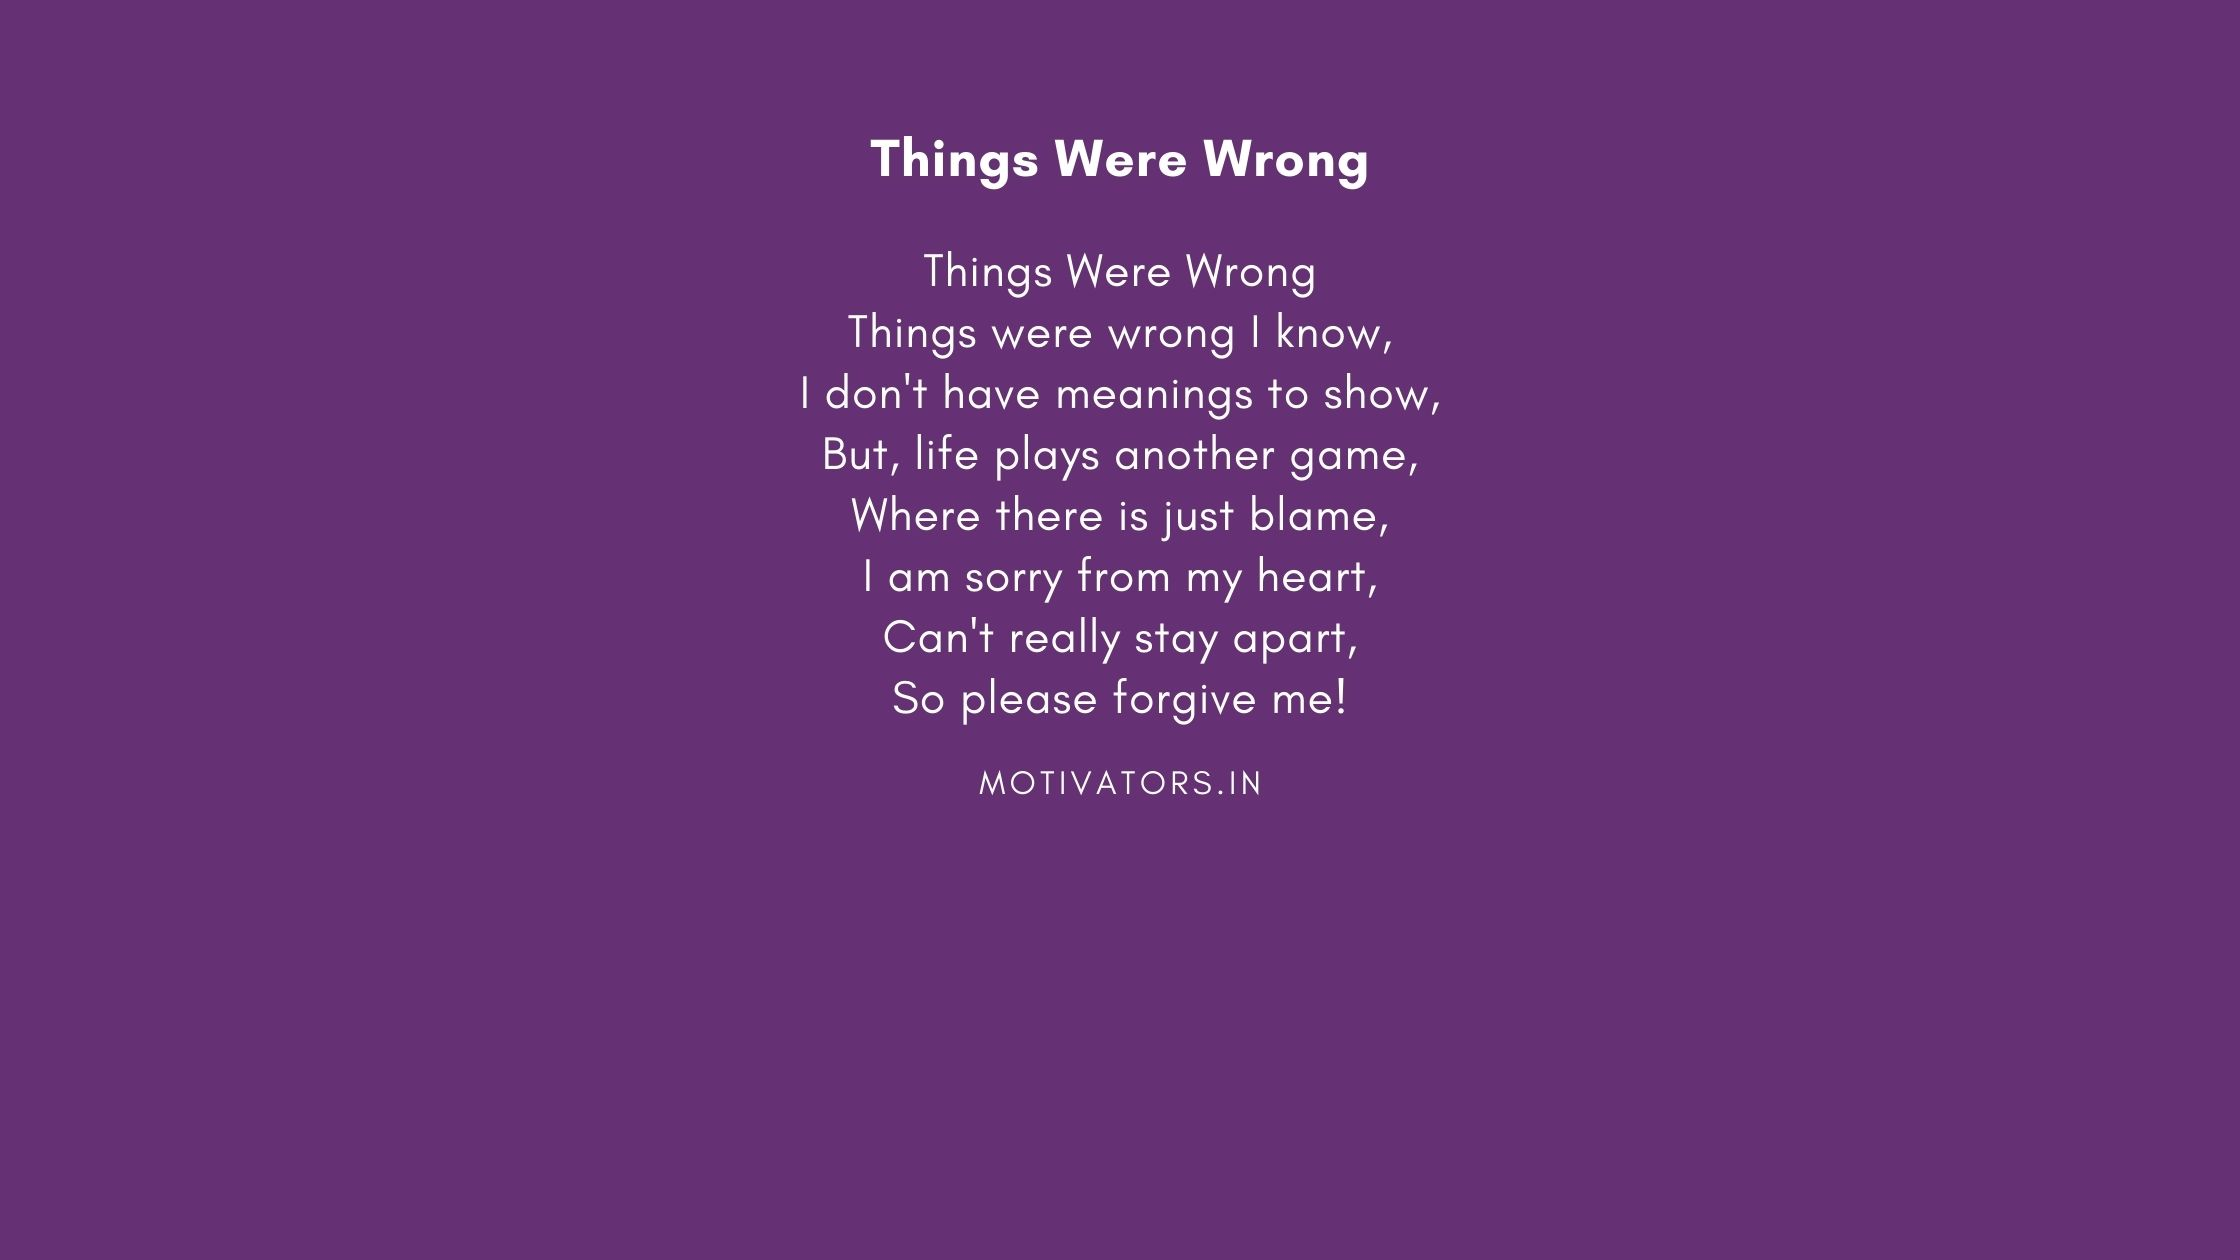 Things Were Wrong